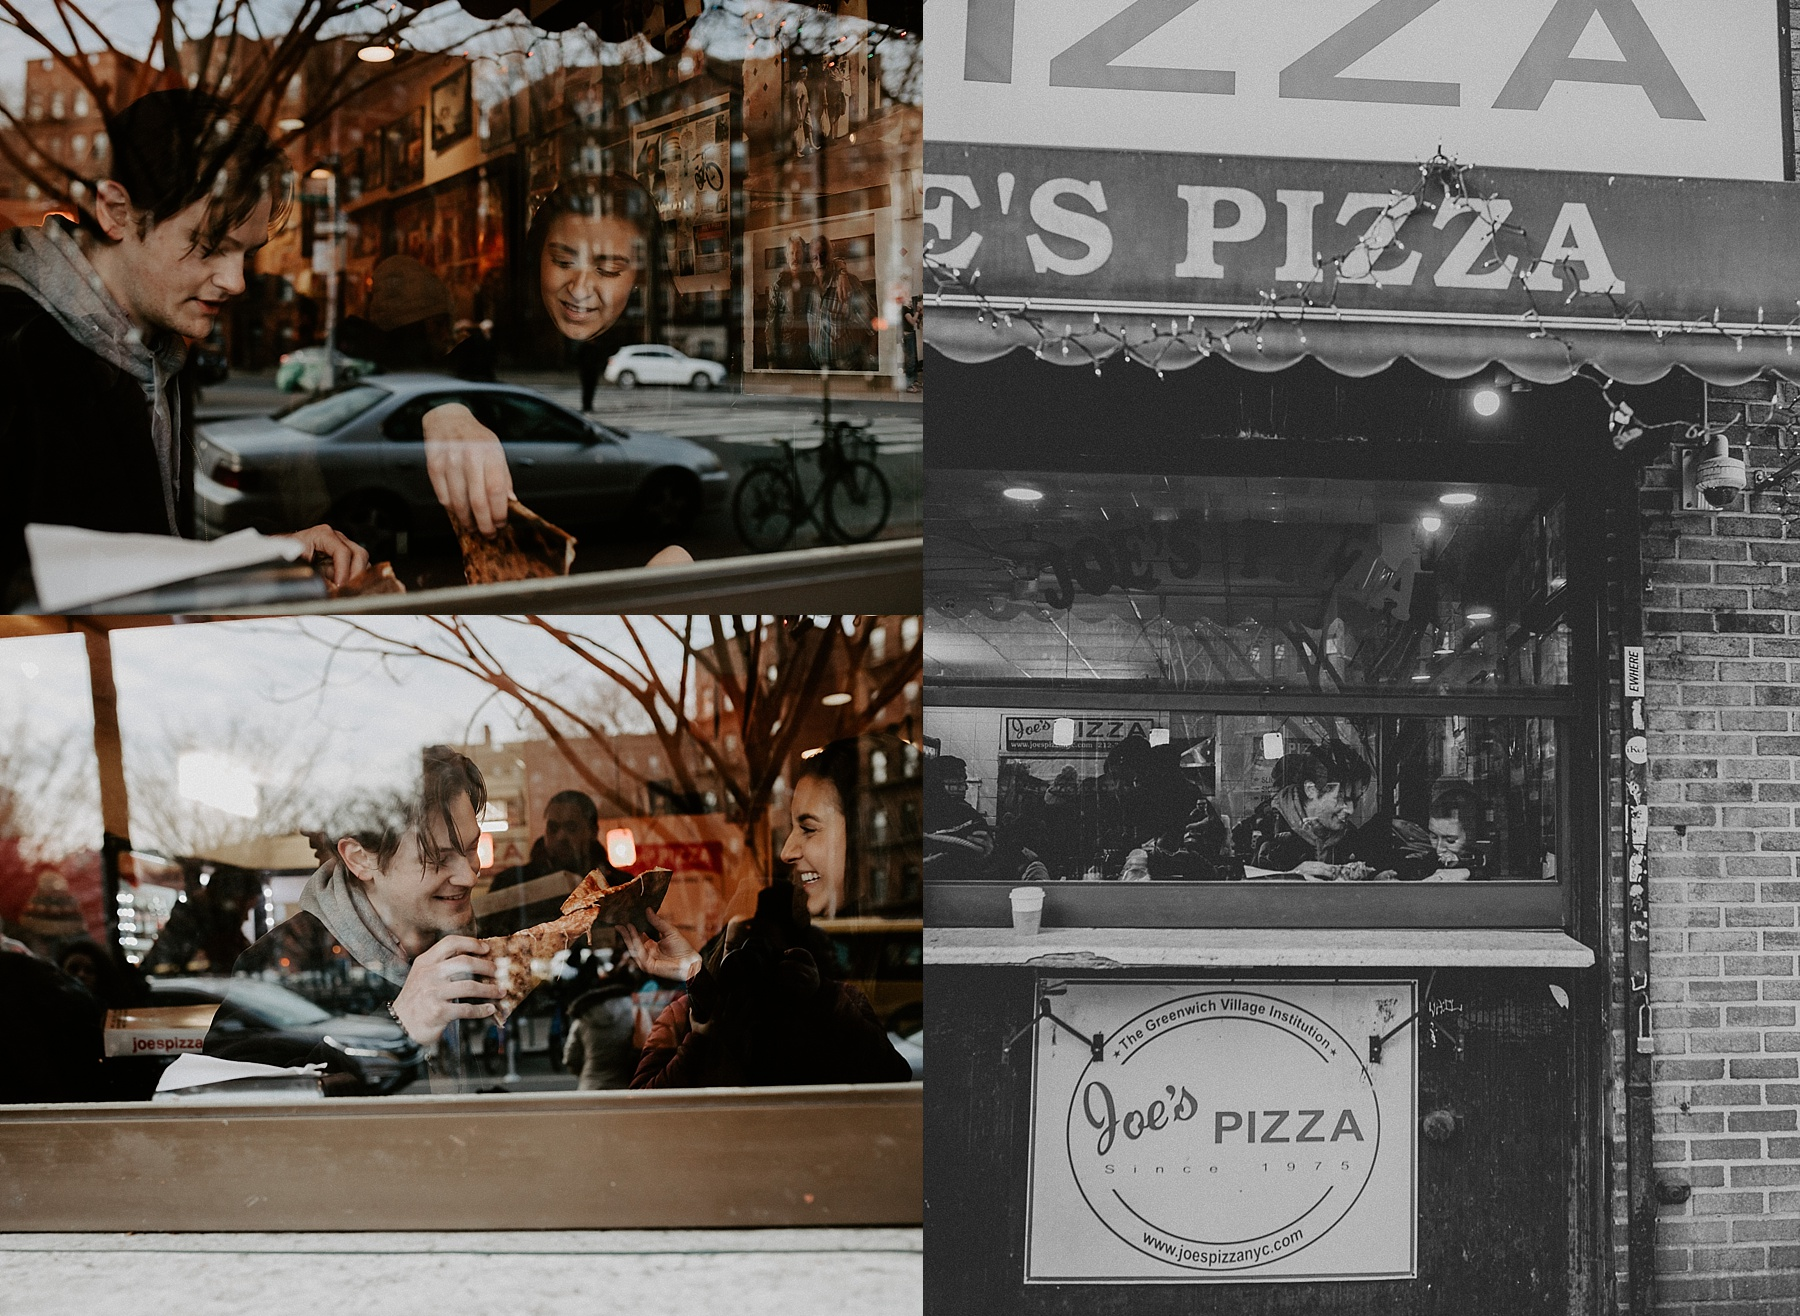 Couple sharing and enjoying a piece of pizza during engagement session in New York City at Joe's Pizza Carmine Street location